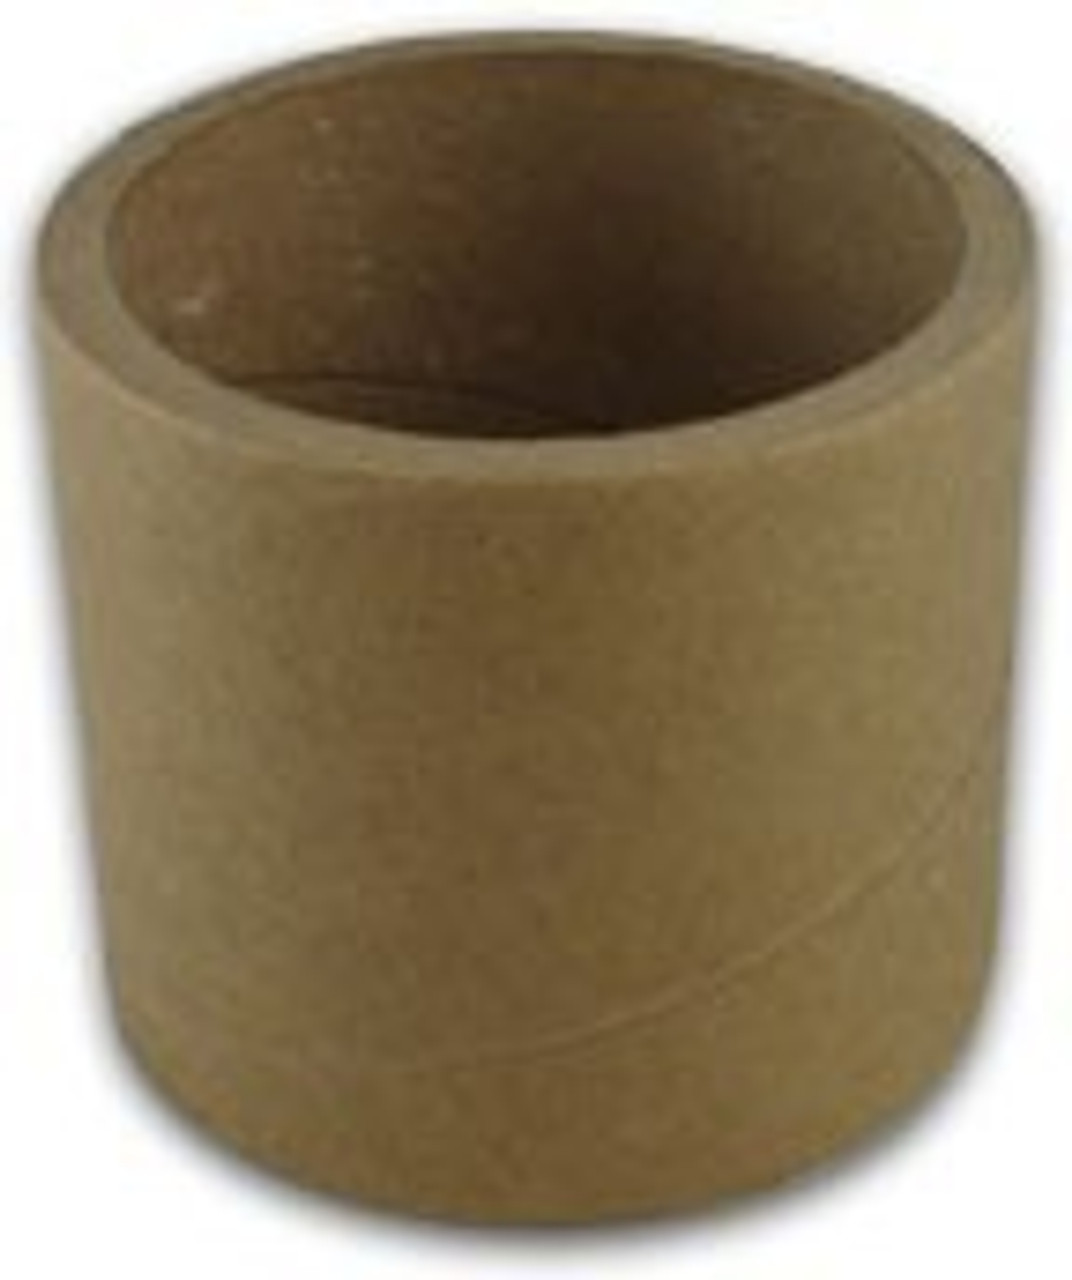 "Empty Cores 3"" X 1/4"" wide - Box of 50 